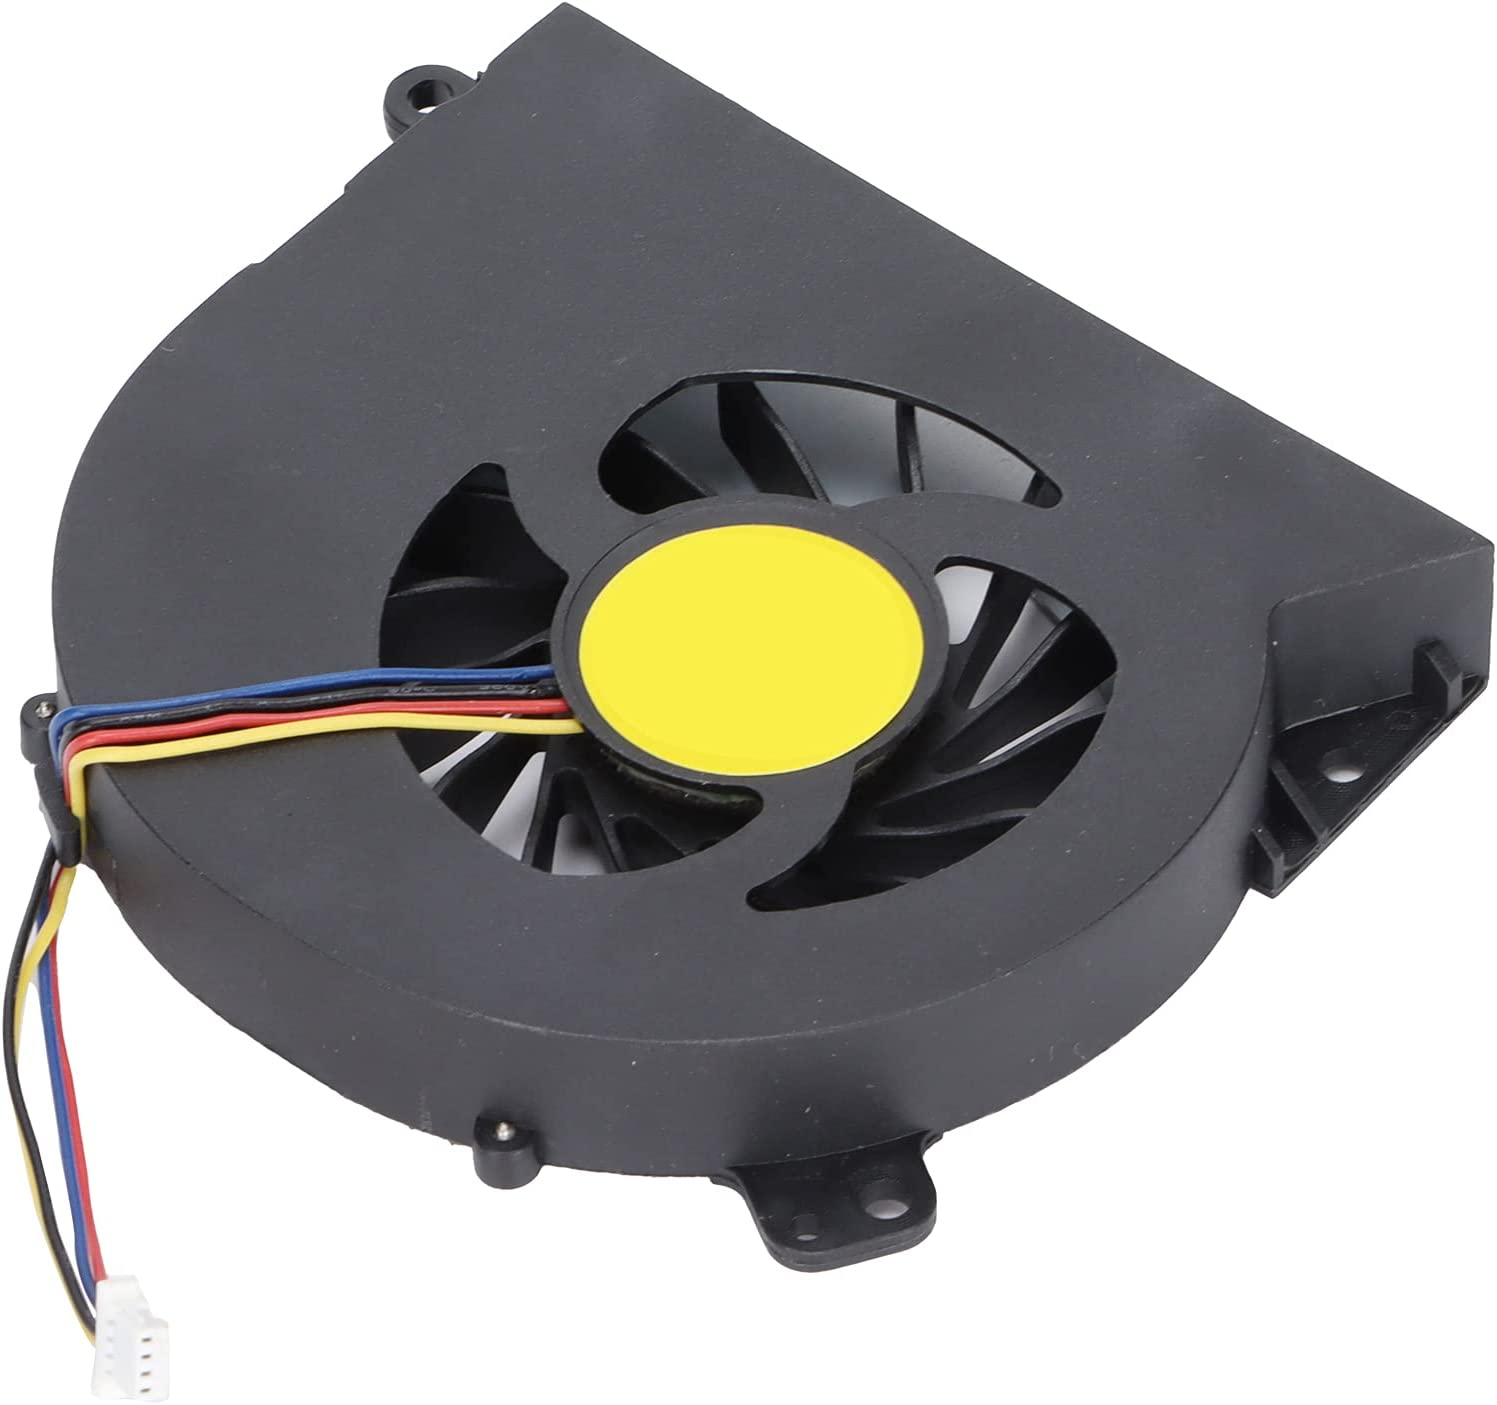 xiji CPU Fan Max 71% OFF Install Easily Widely Max 71% OFF Fans Cooling Computer Co